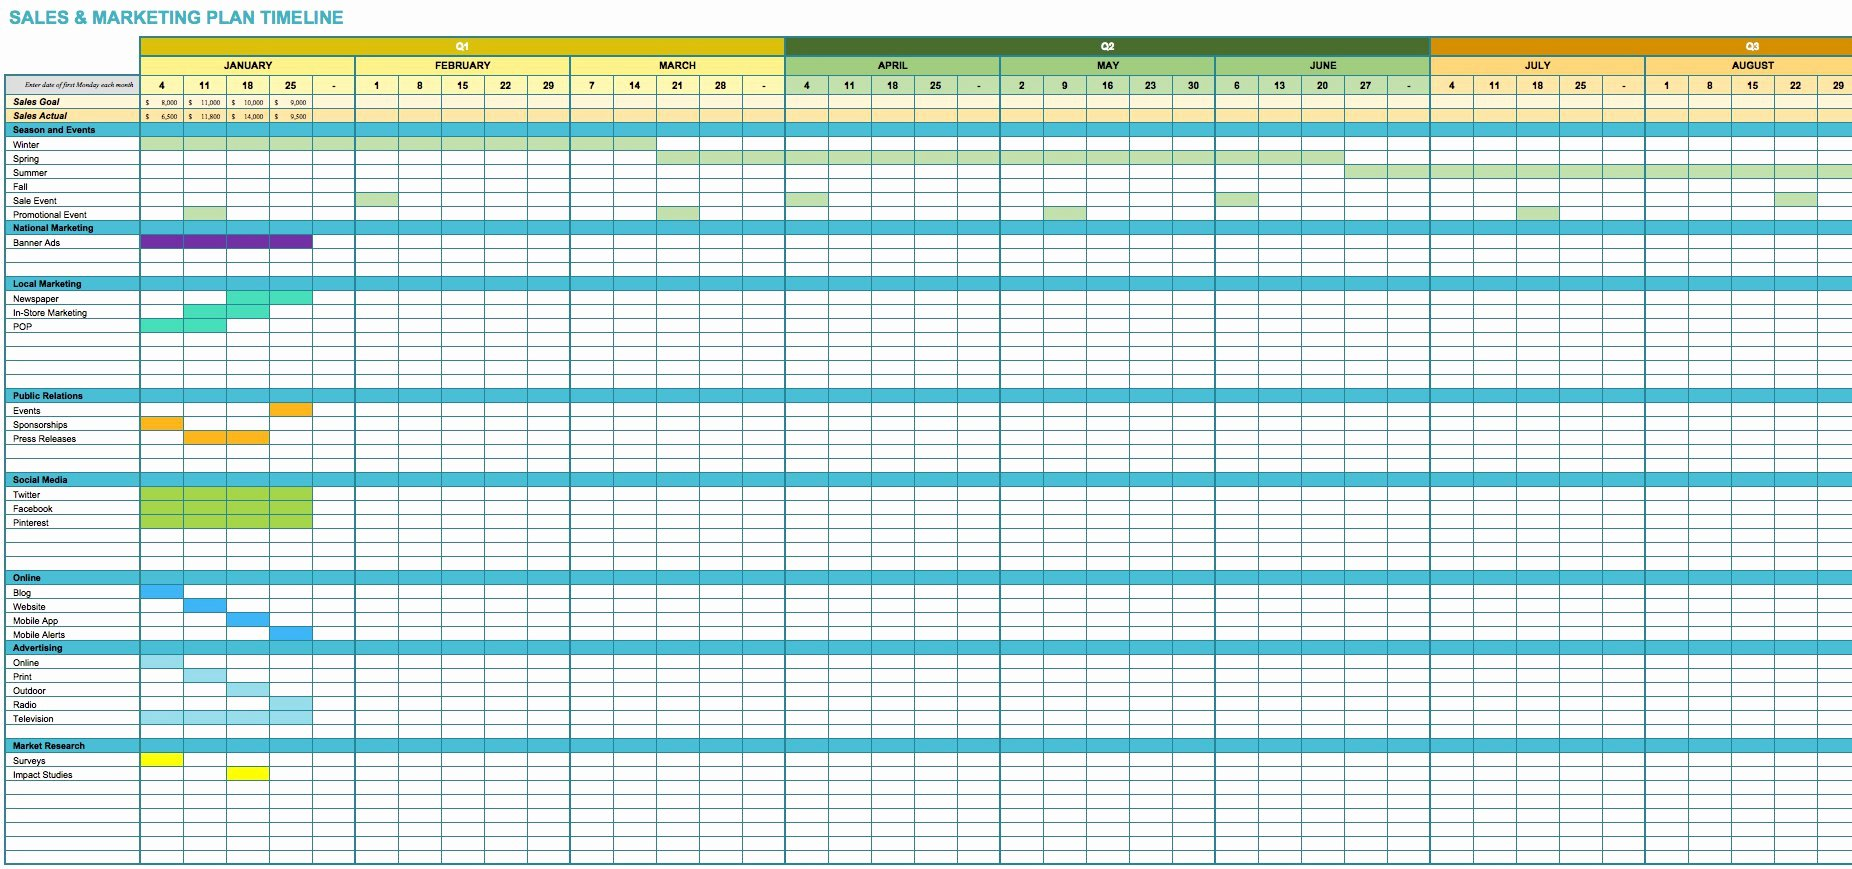 Marketing Timeline Template Excel New Free Marketing Timeline Tips and Templates Smartsheet